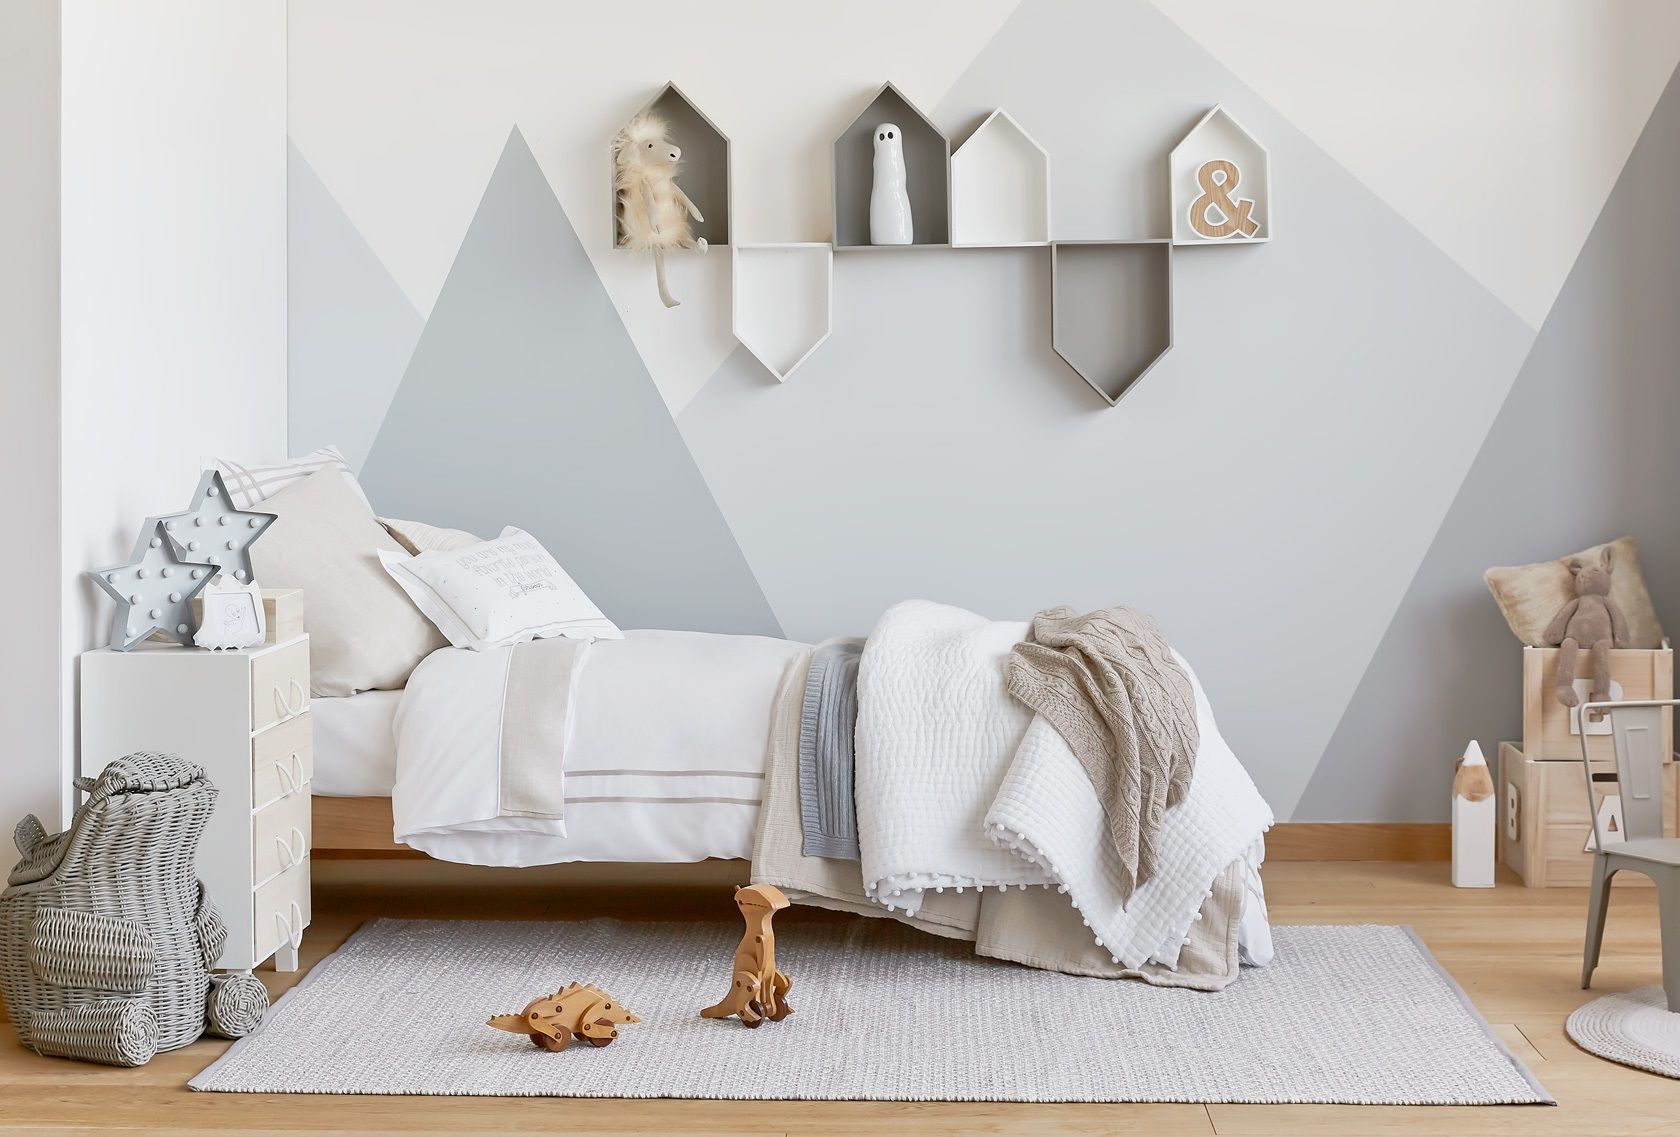 Kinderzimmer Neutral ~ Mountain murals. gender neutral bedroom. house shelves. zara home